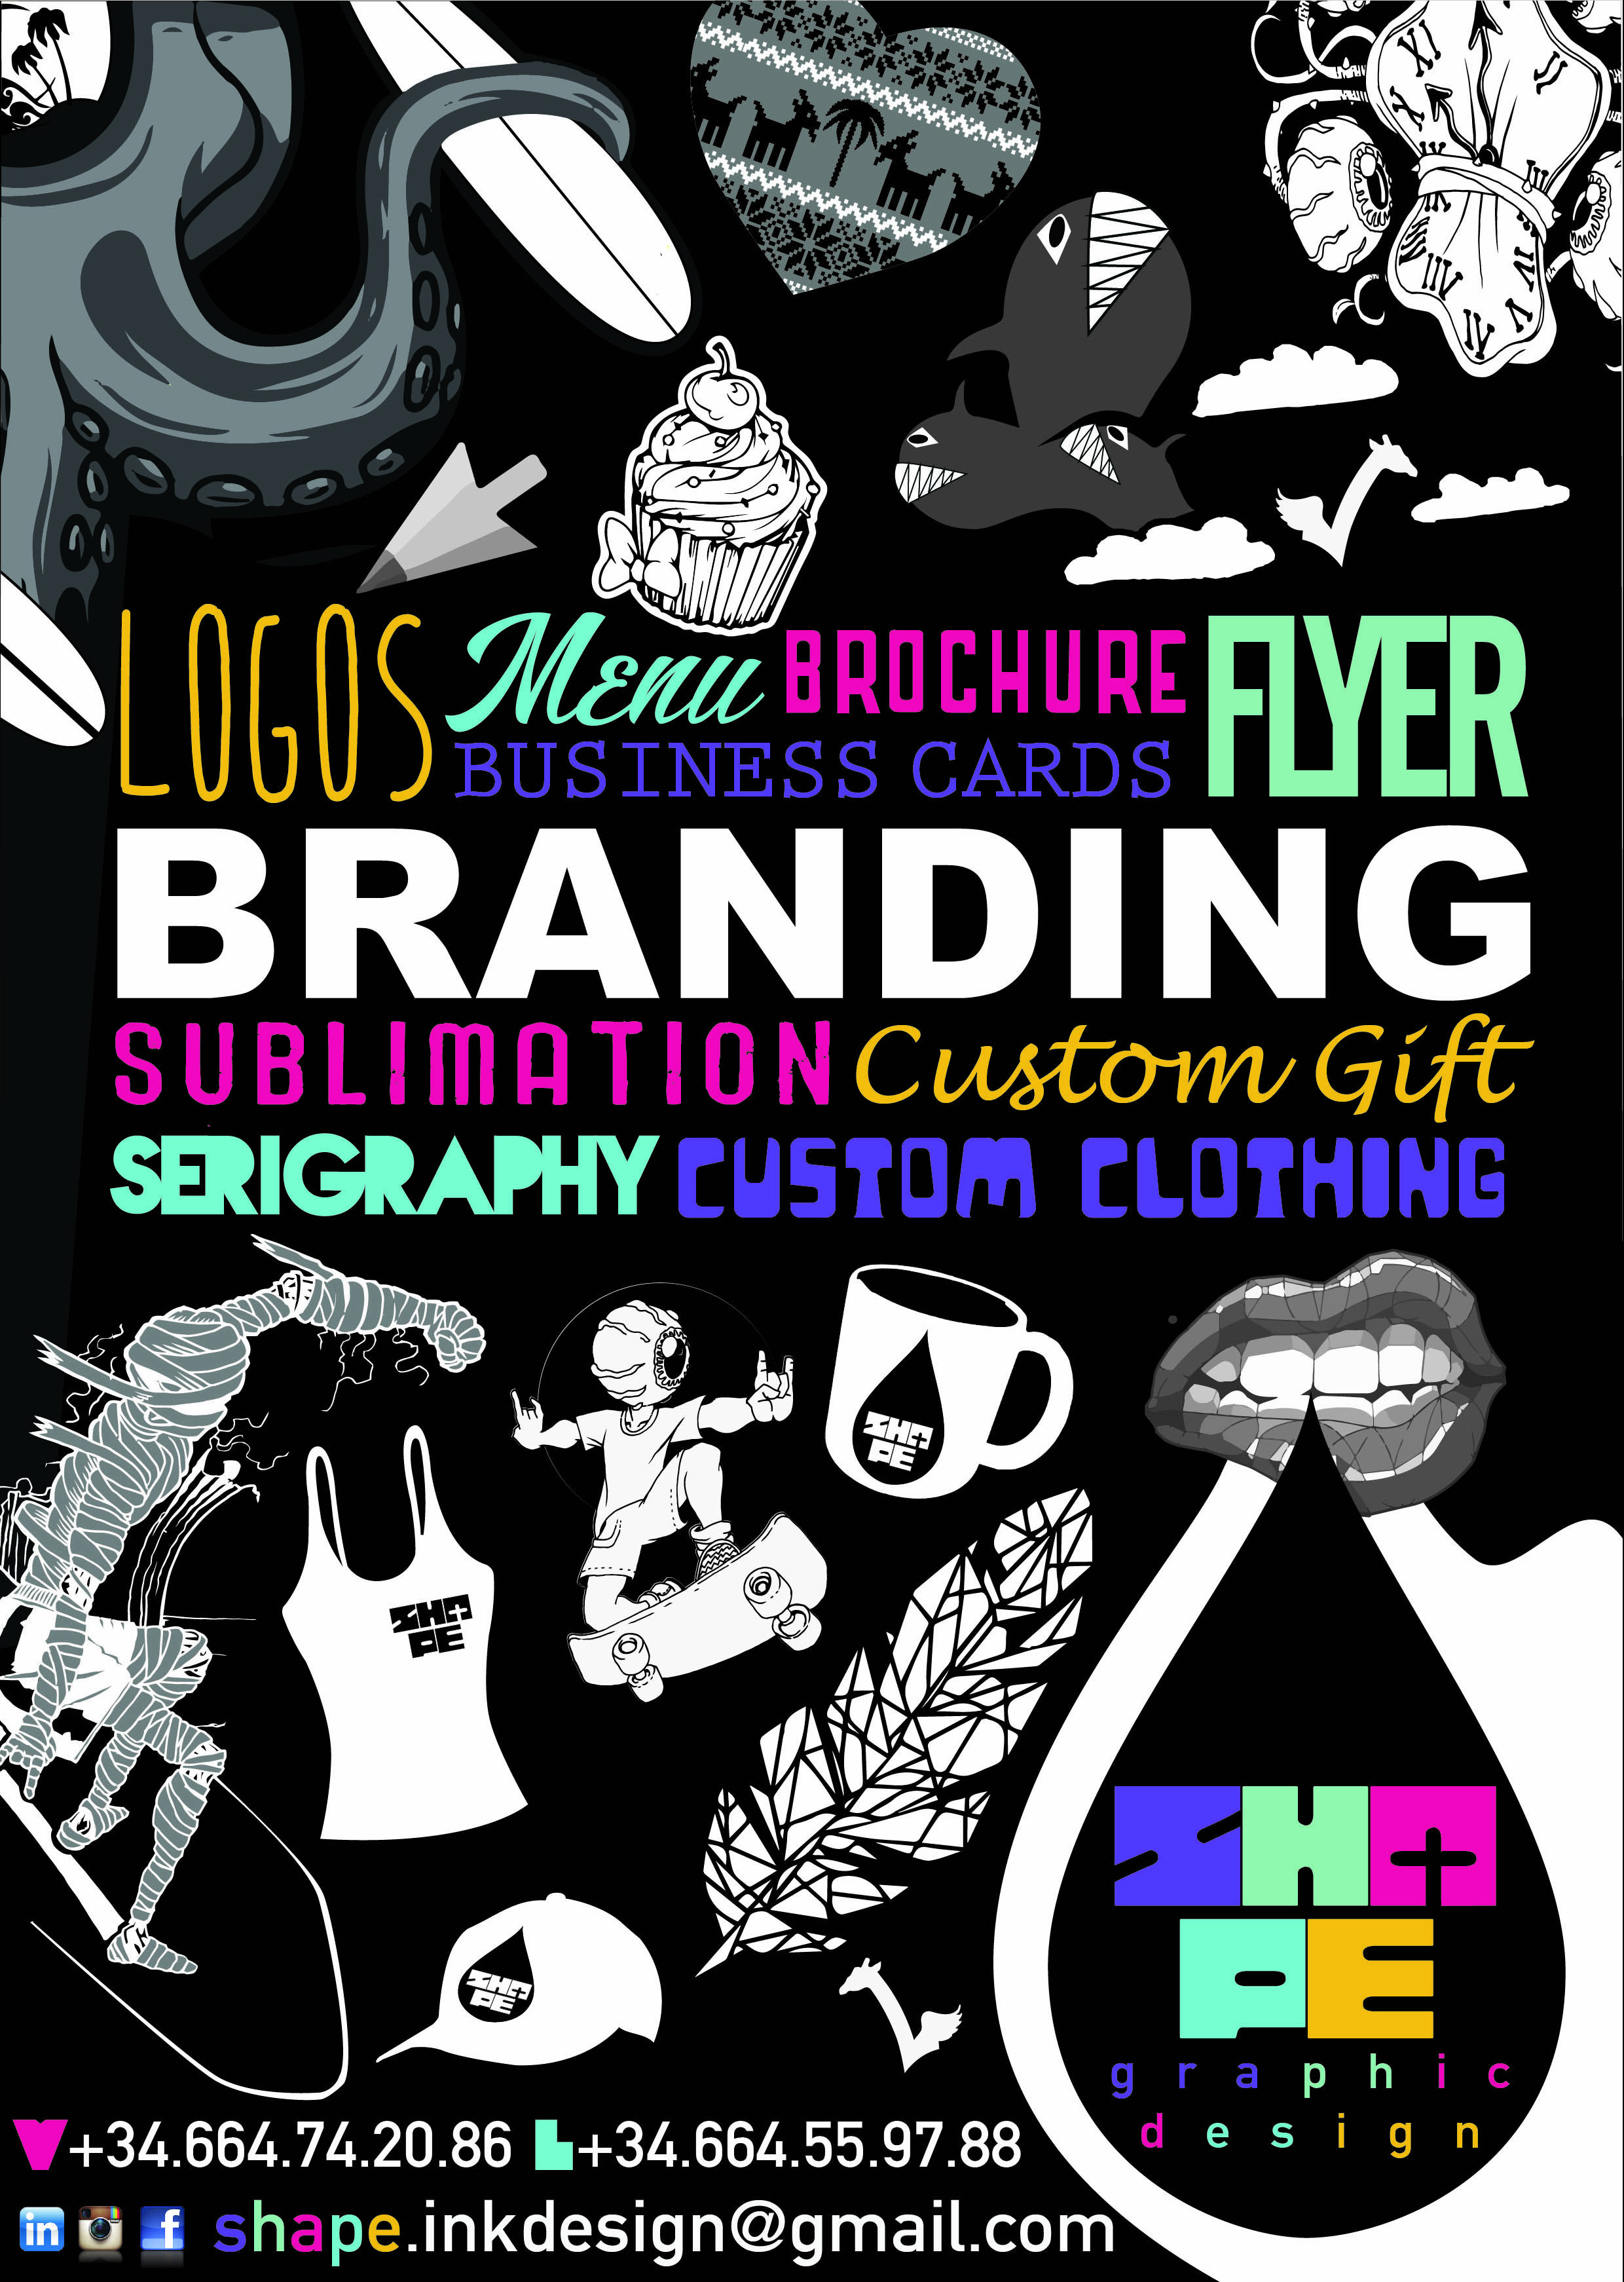 WE ARE BRANDING LOGOS MENU BROCHURE FLYER SUBLIMATION